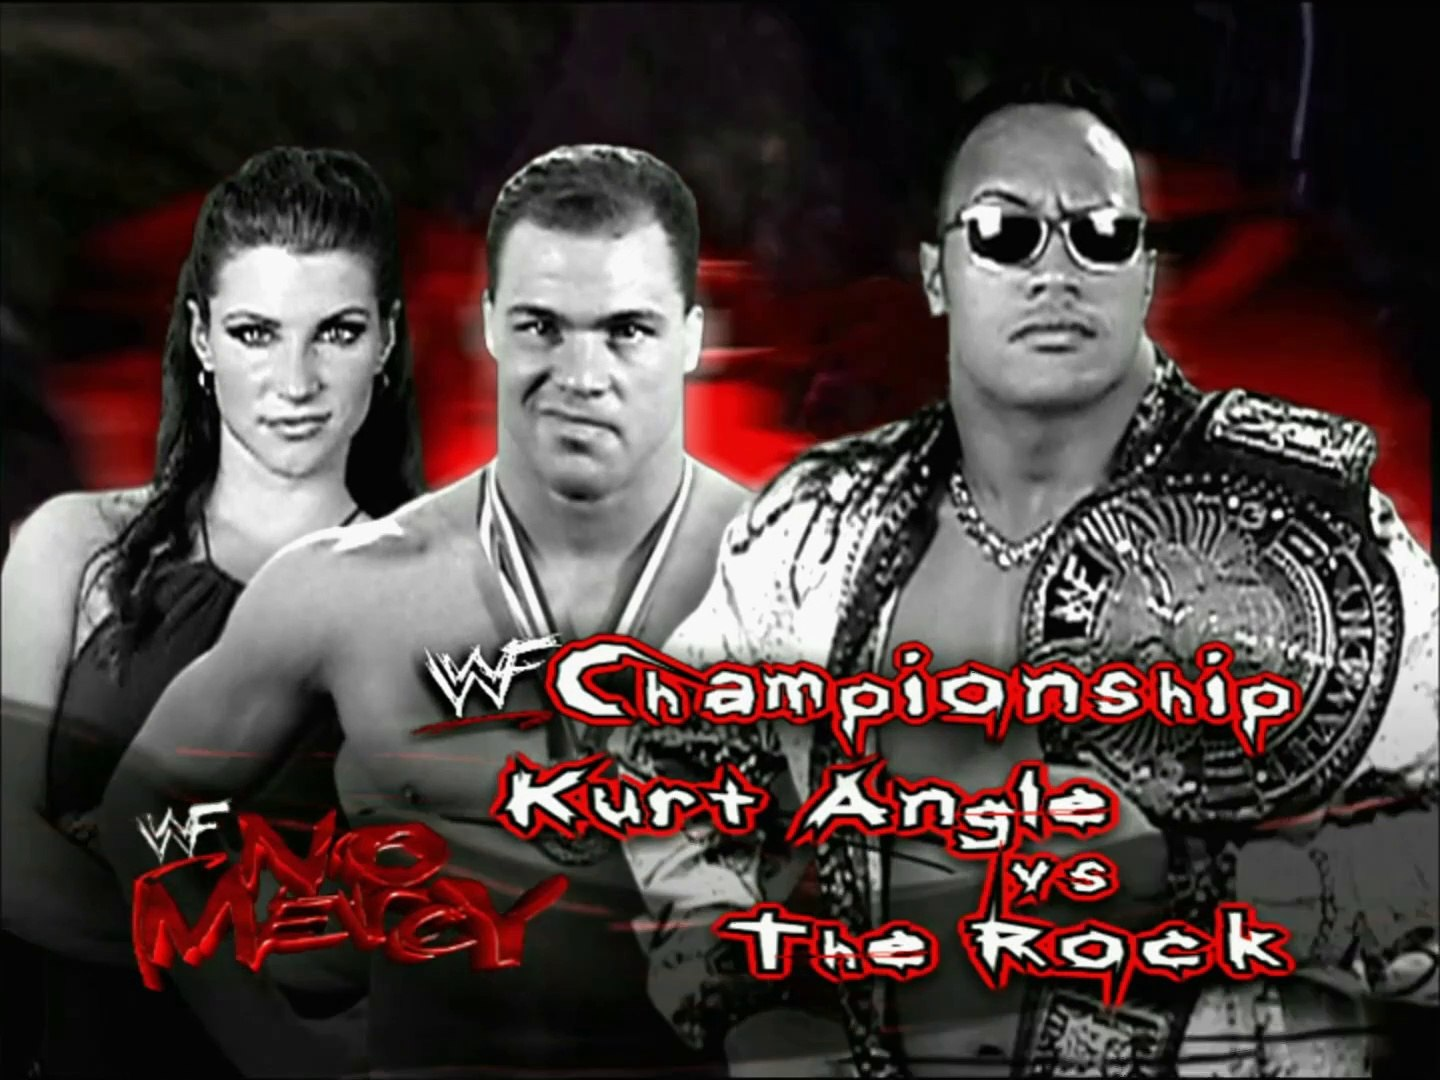 Kurt Angle vs The Rock WWF No Mercy 2000 Promo